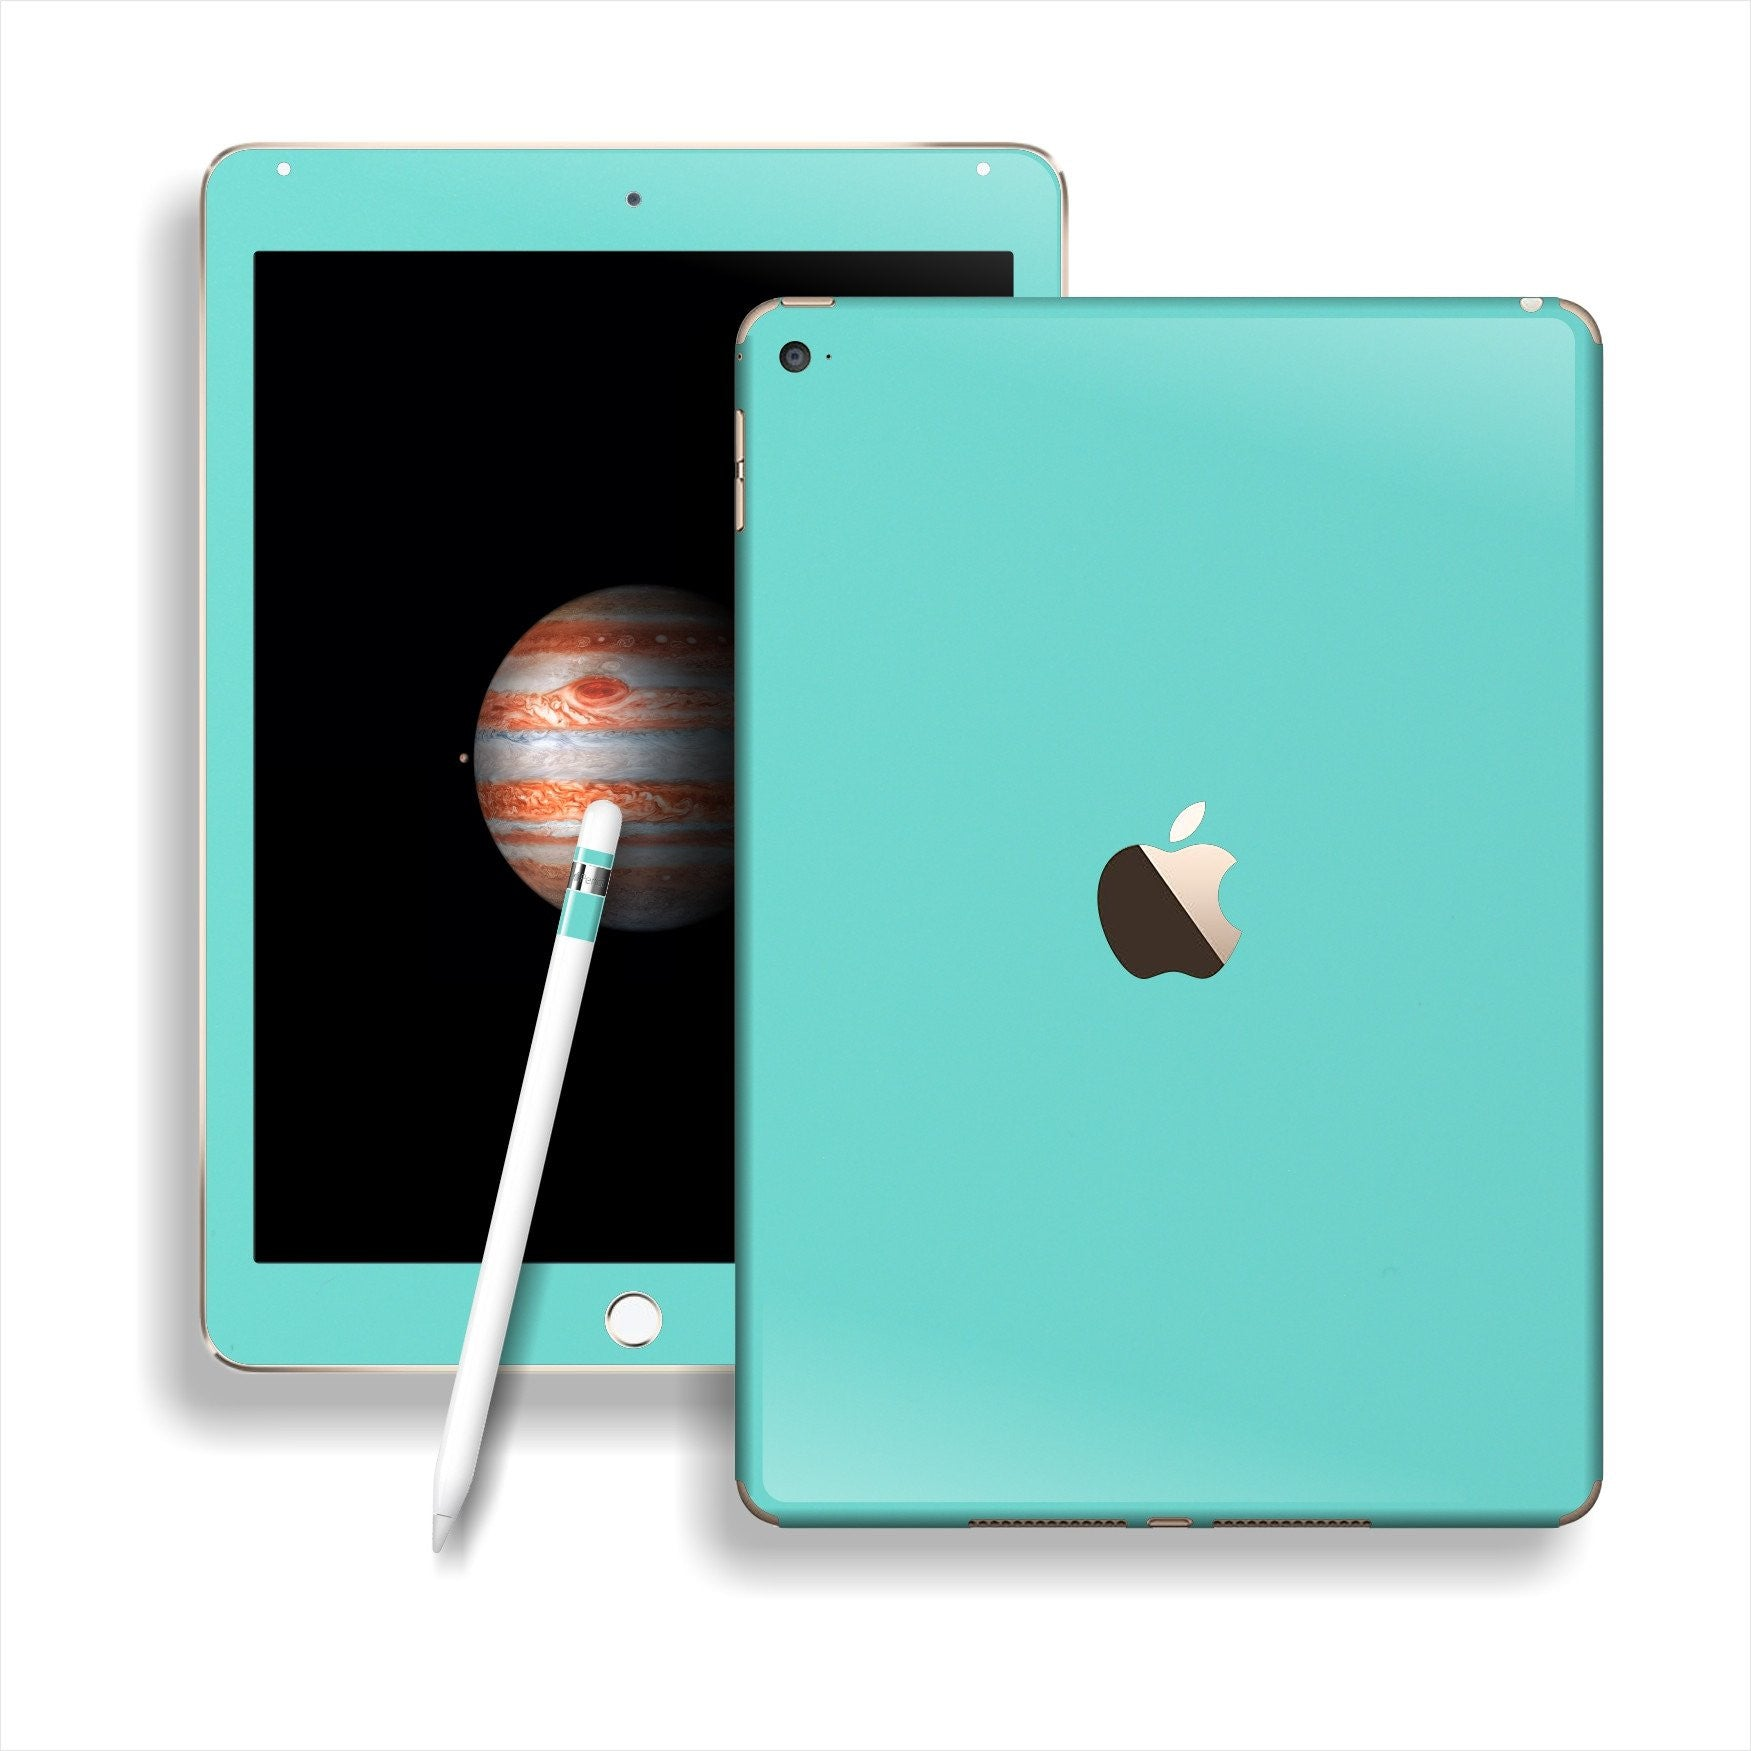 iPad PRO Matt Matte MINT Skin Wrap Sticker Decal Cover Protector by EasySkinz